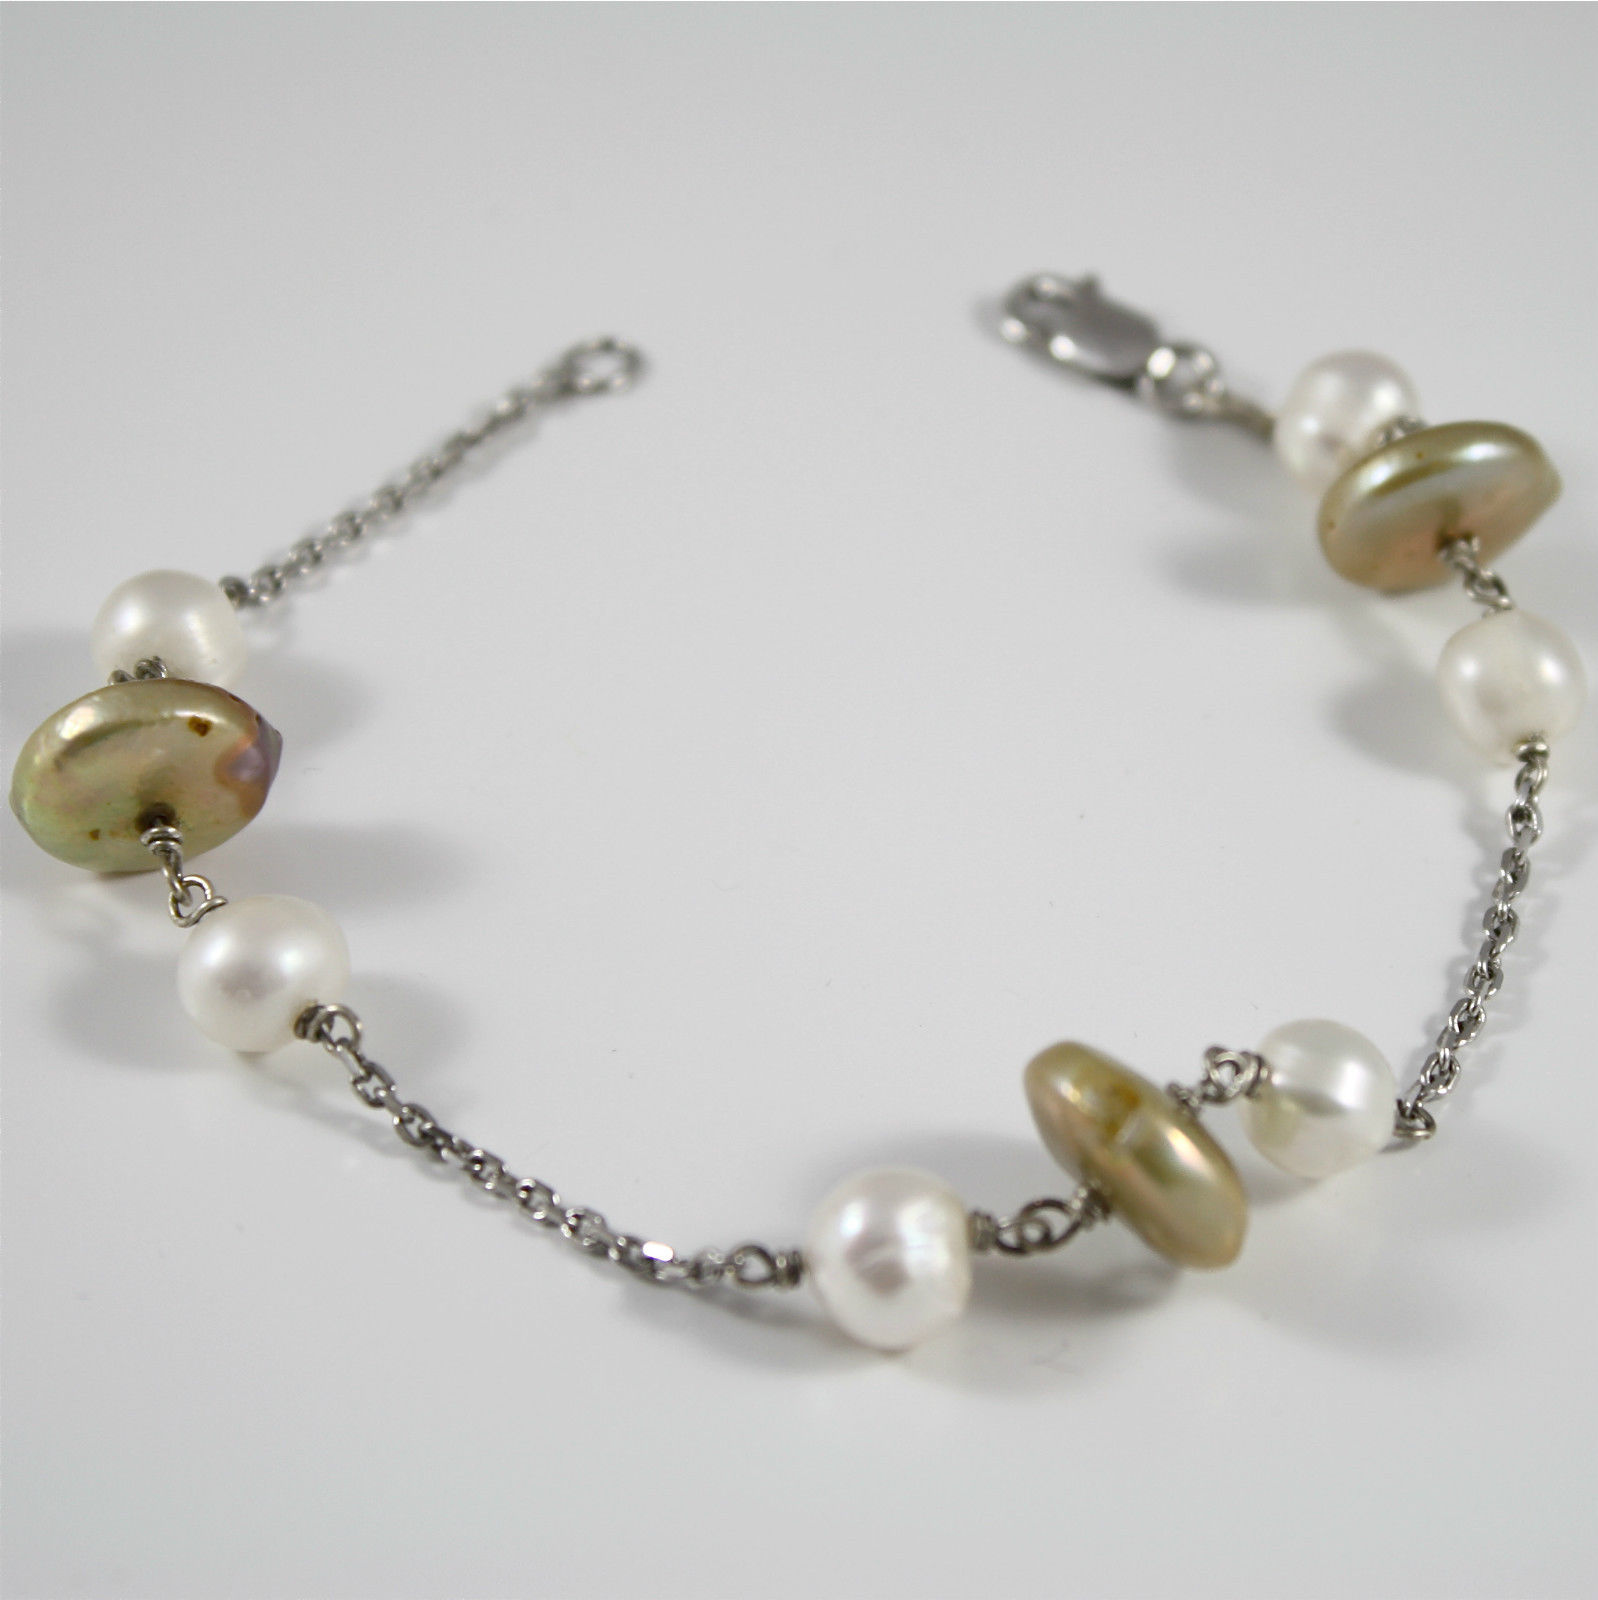 Bracelet in Sterling Silver 925 Rhodium with Pearls and disks Pearl Yellow